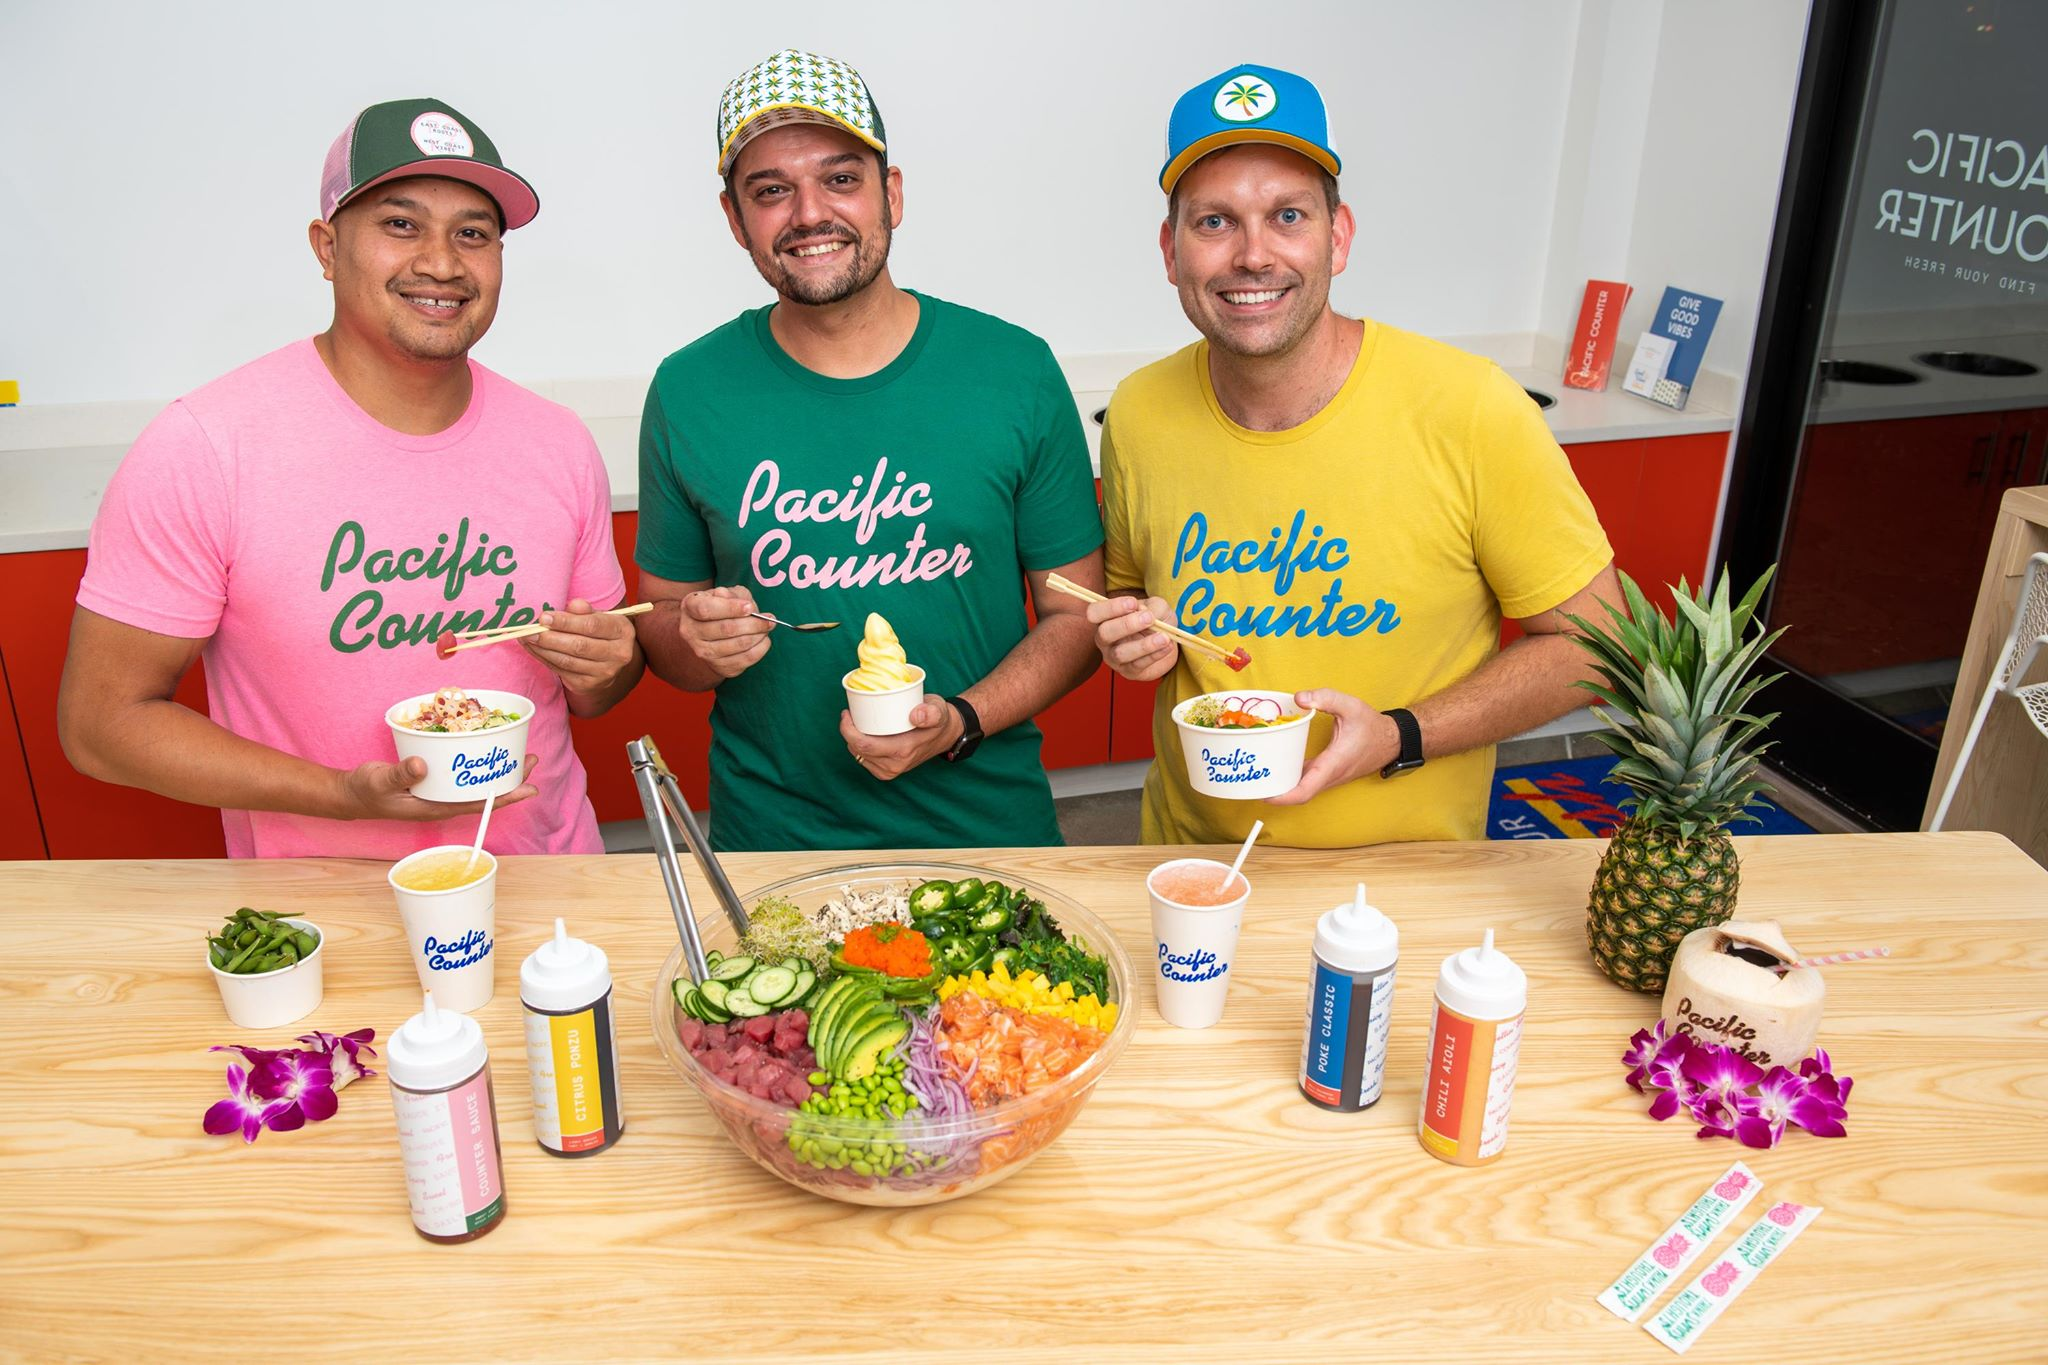 Owners of Pacific Counter - Chef Tock (left), Eric Bialik (middle), and Tanner Loebel (RIght)